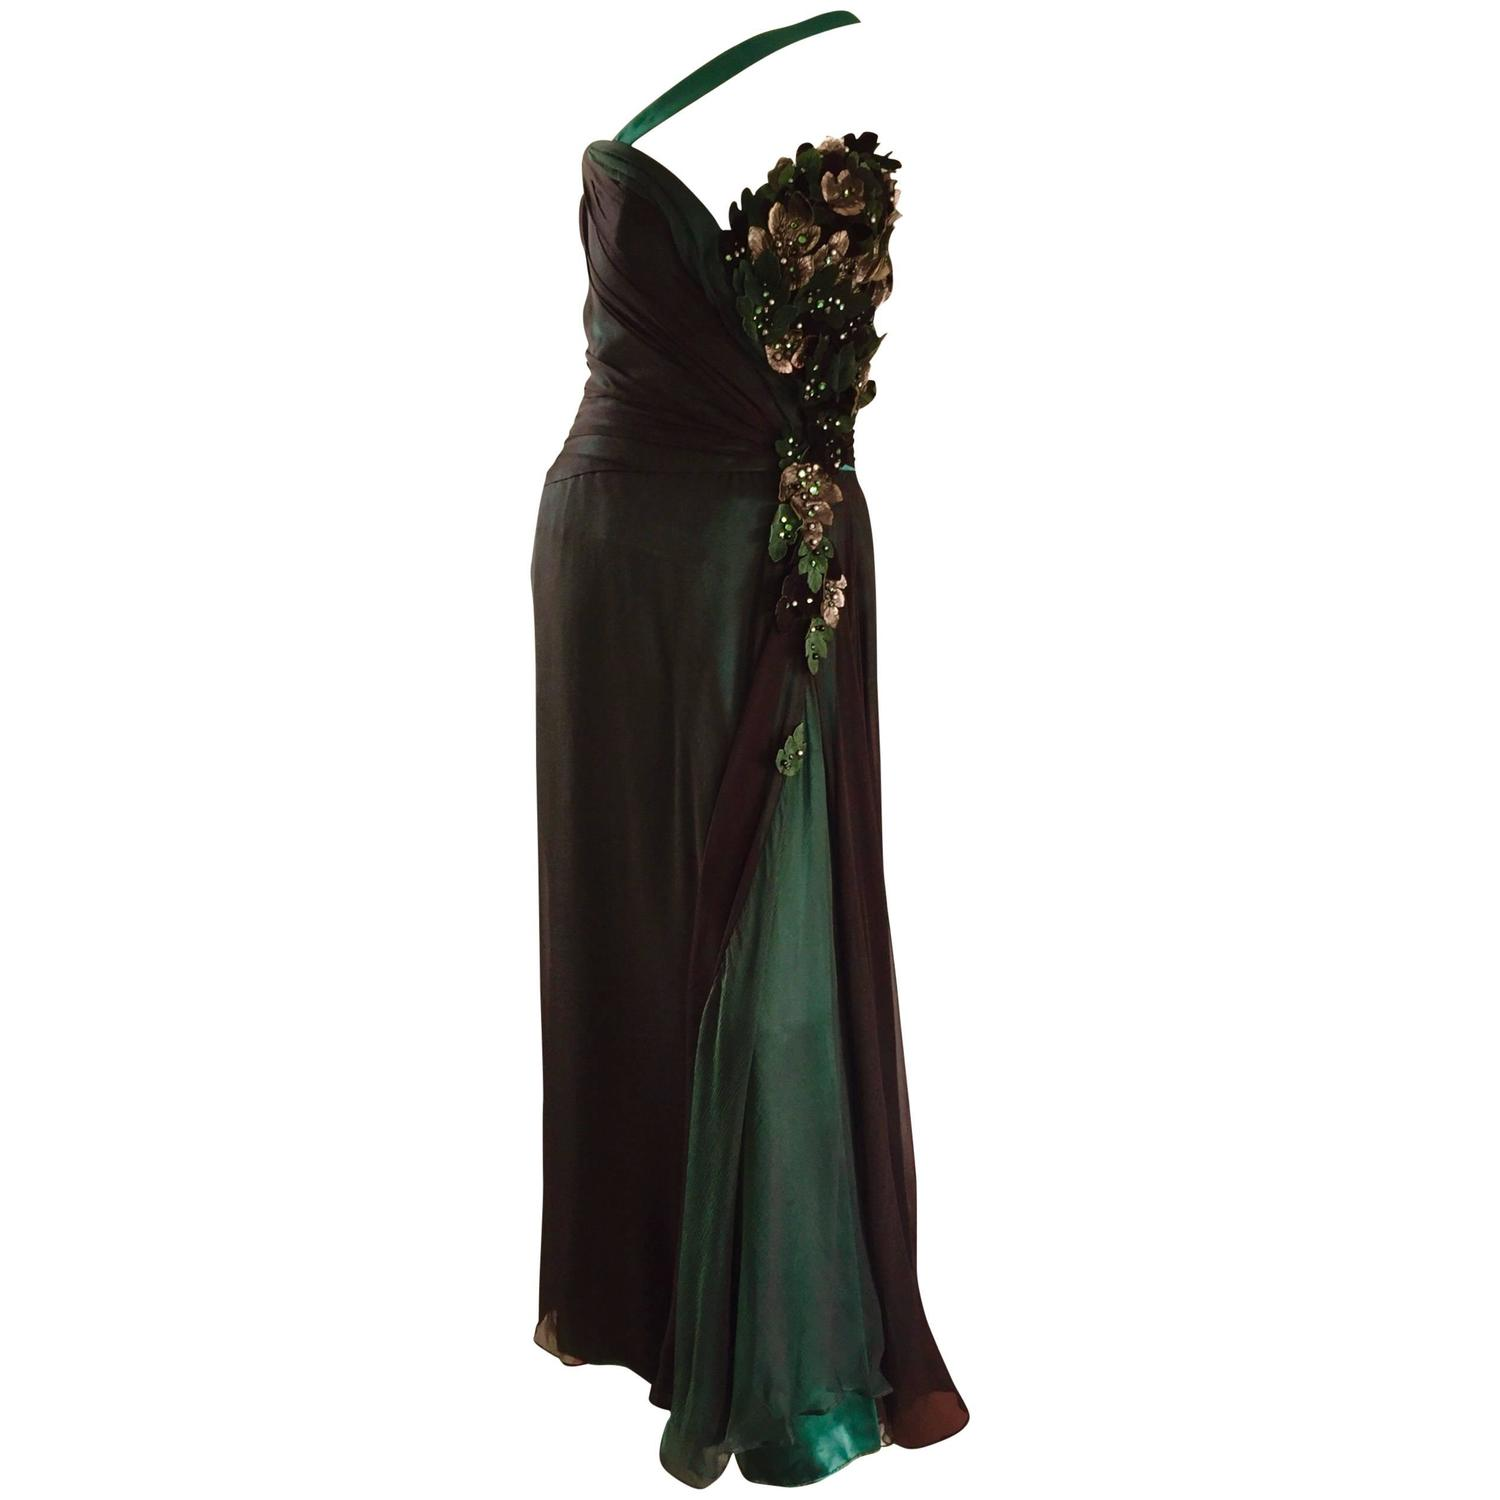 Leather Evening Gowns - 264 For Sale on 1stdibs